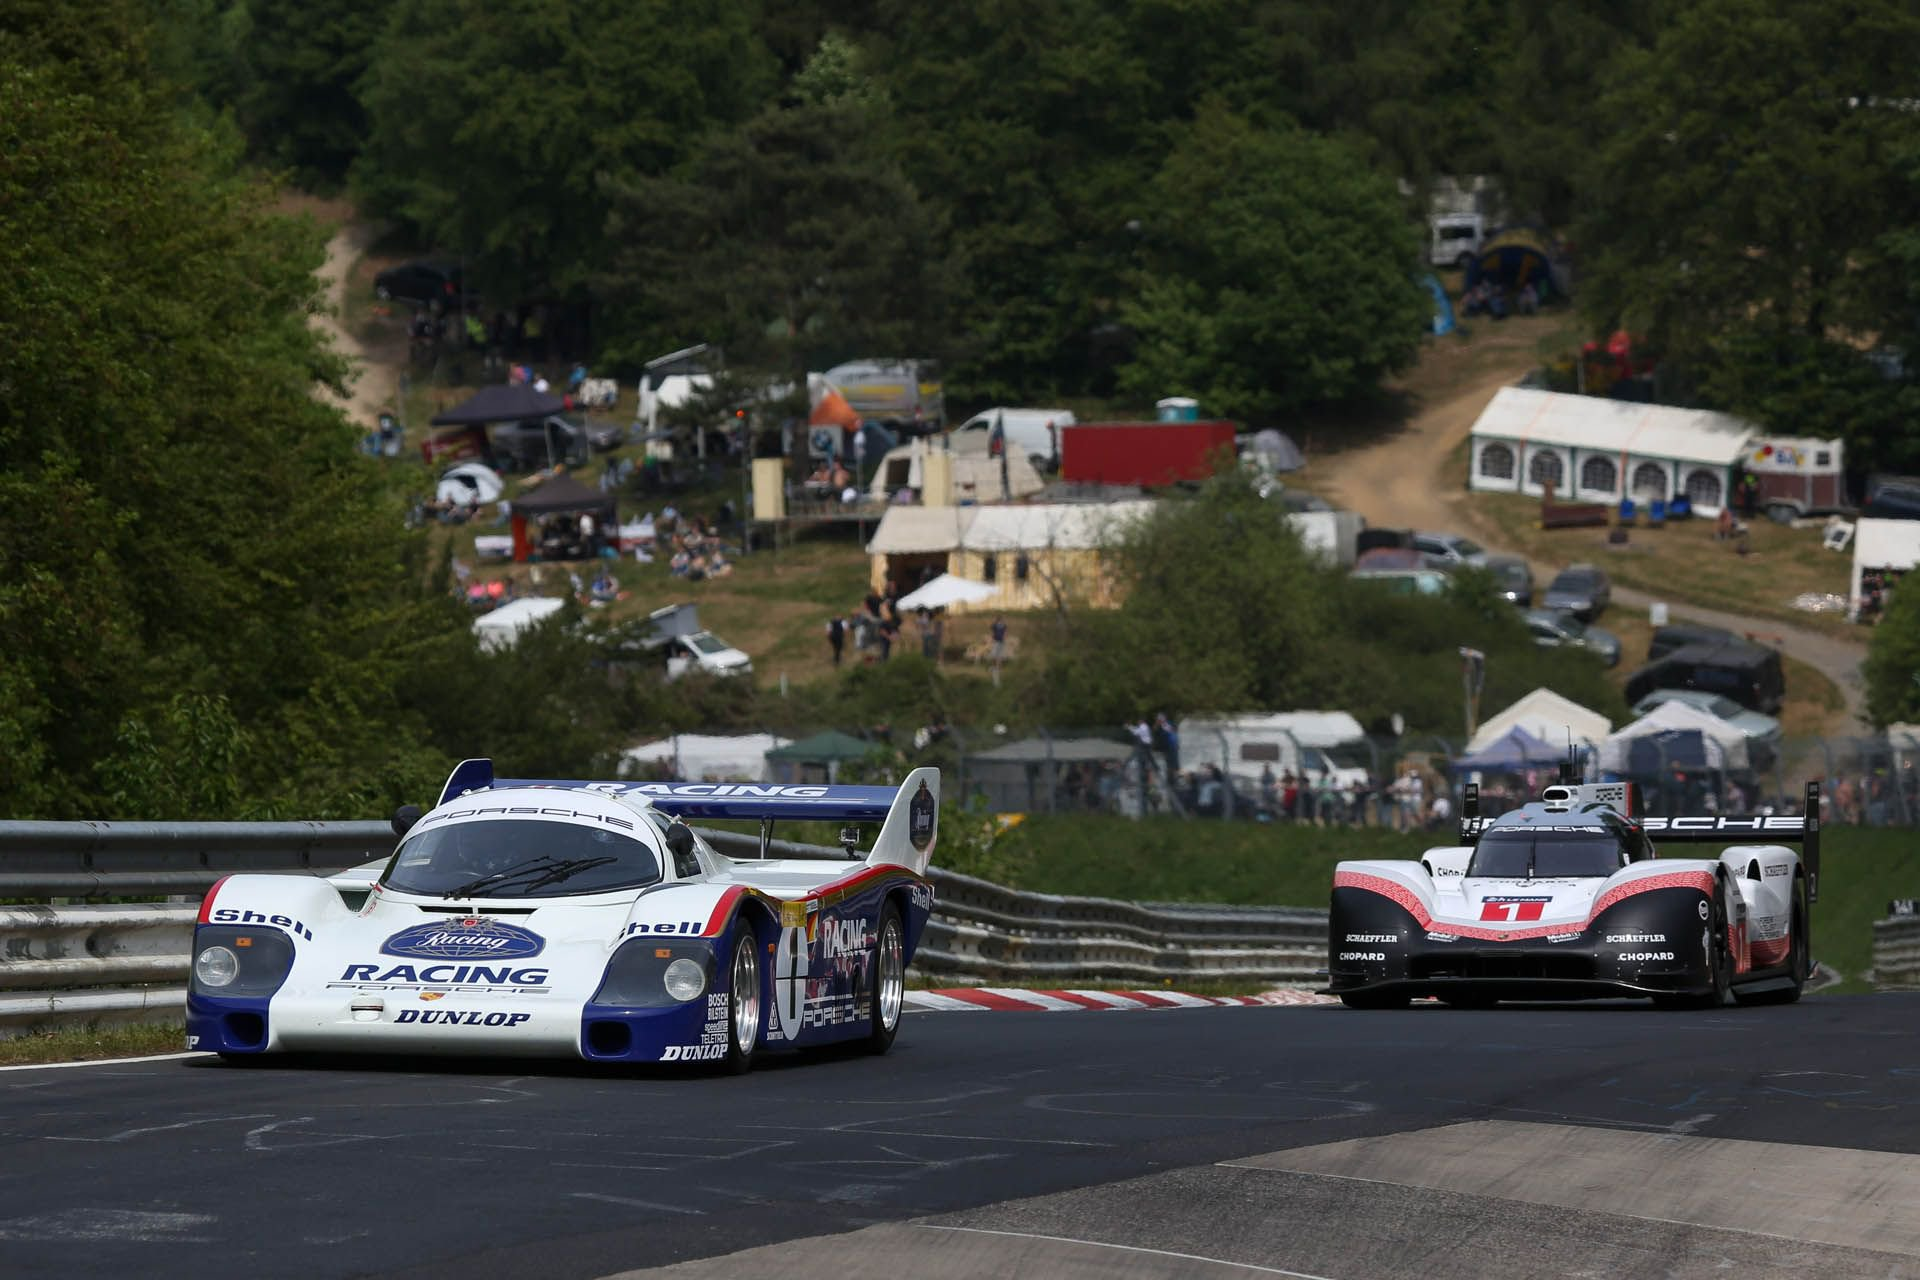 Porsche 919 Hybrid Evo and 956 at Nurburgring (10)